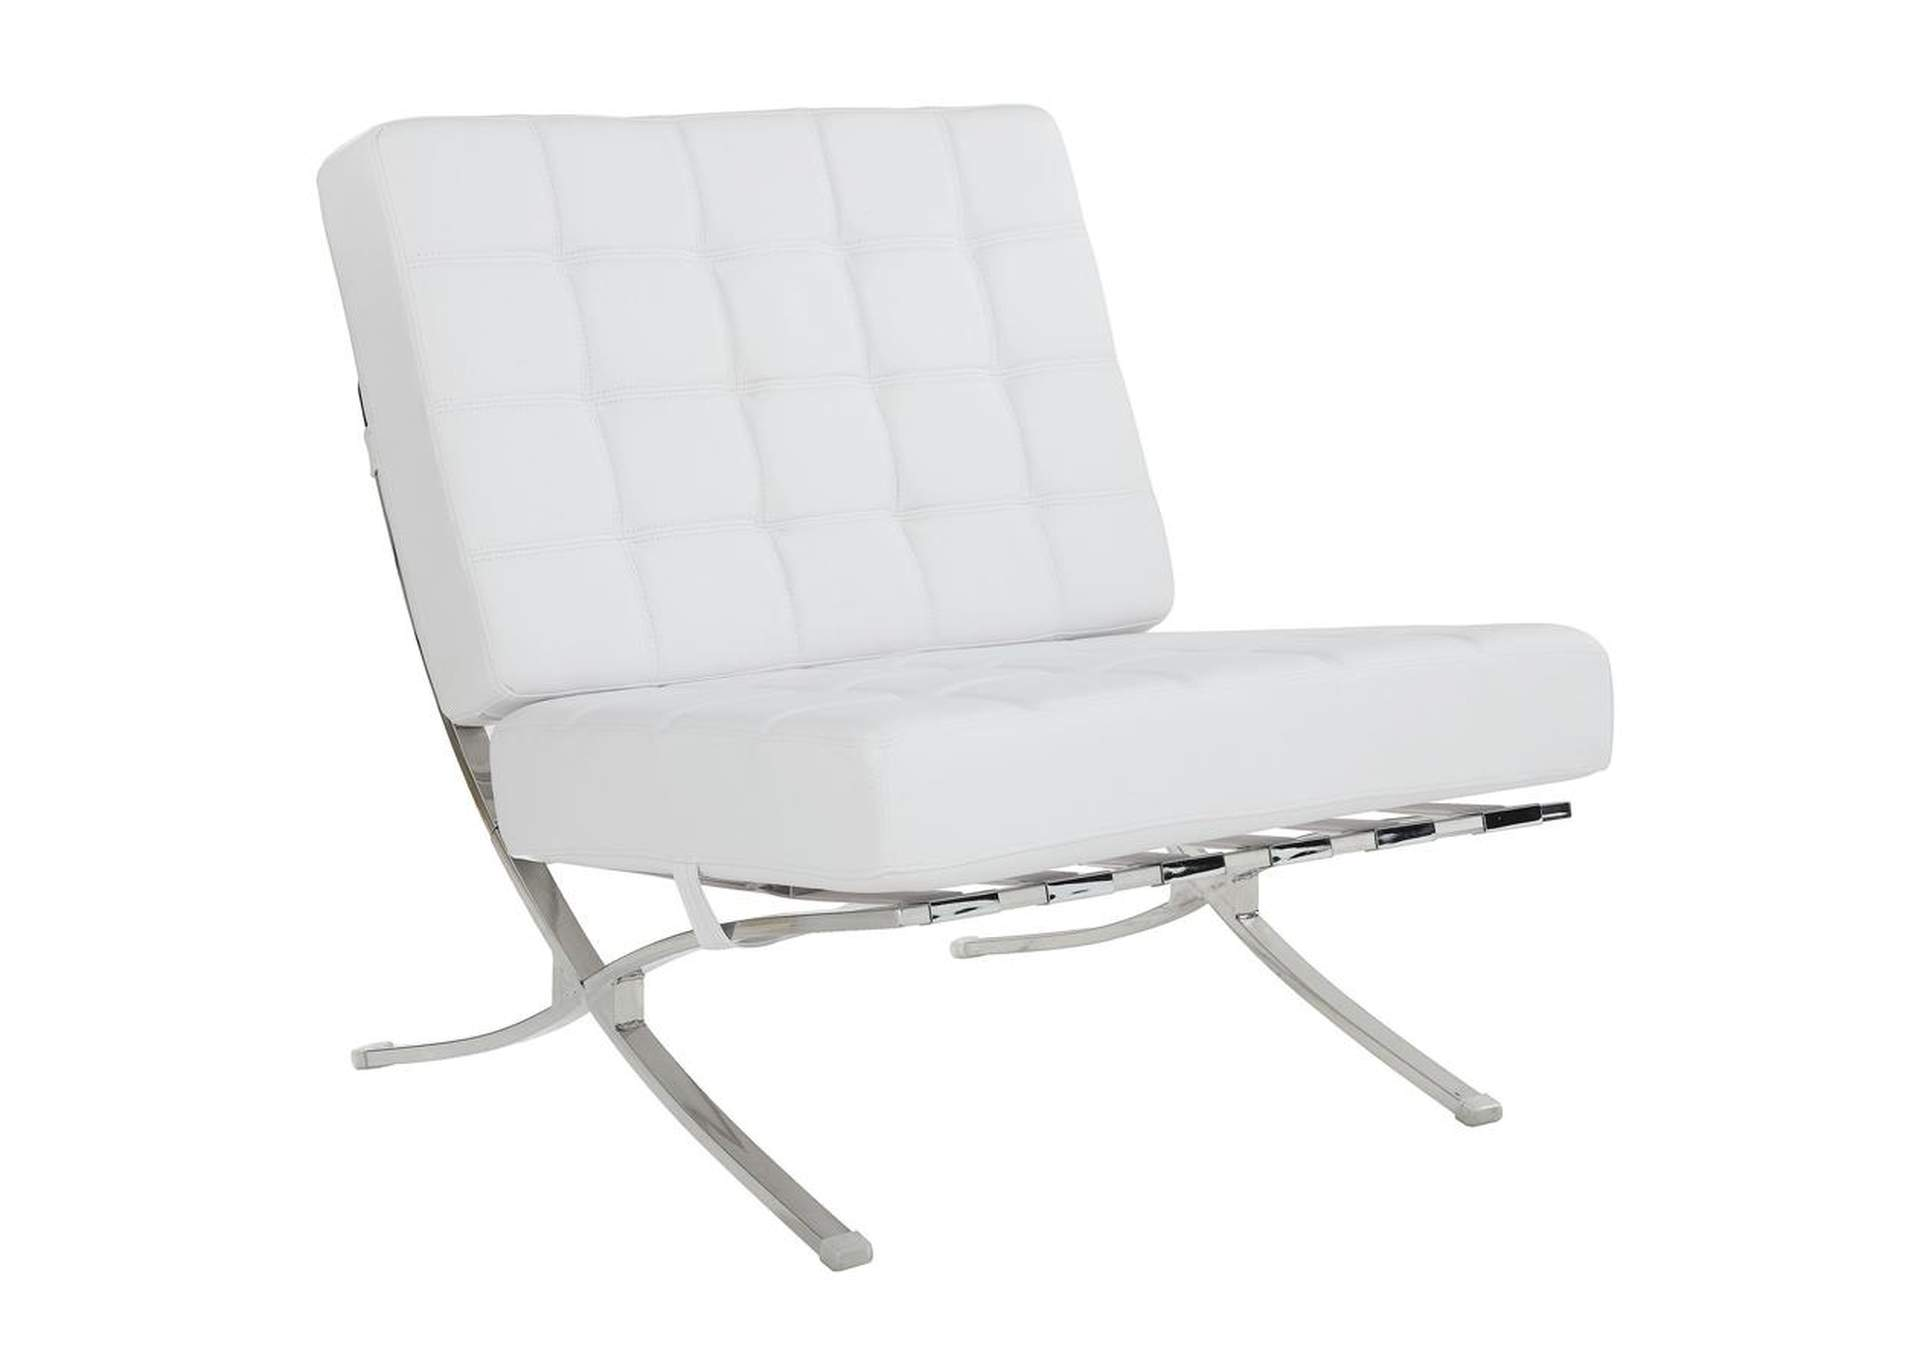 Mischka White and Chrome Accent Chair,Coaster Furniture